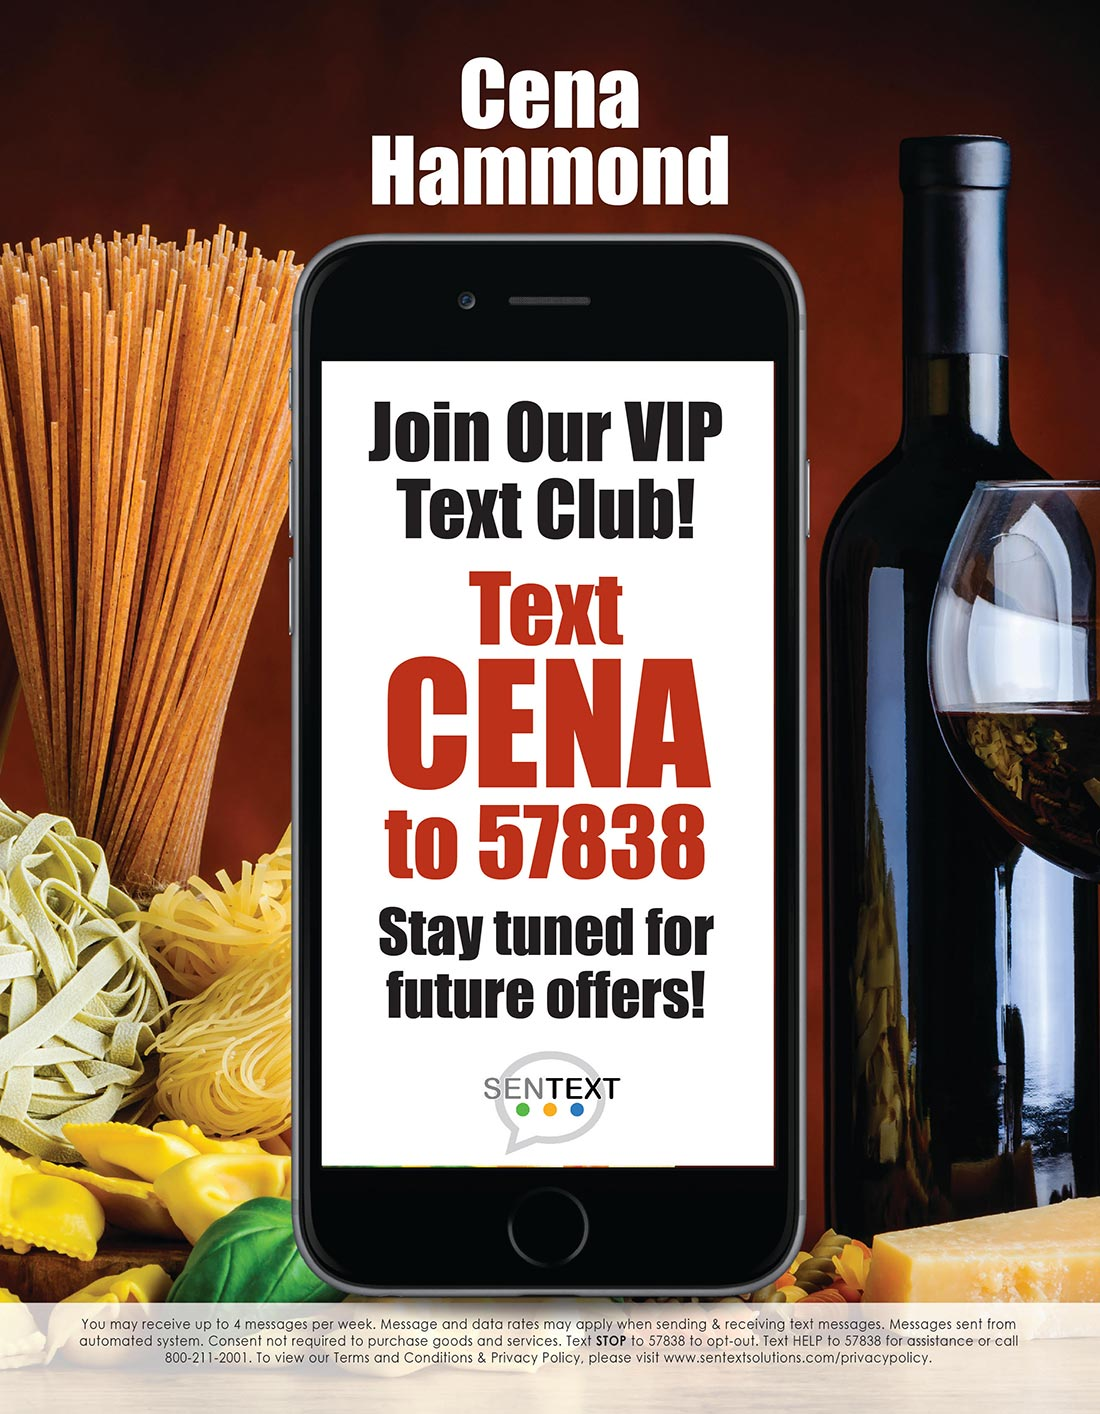 Cena Hammond. Join our VIP Text Club. Text CENA to 57838. Stay tuned for future offers! Sentext. You will receive up to 4 messages per week. Message and data rates may apply when sending & receiving text messages. Consent not required to purchase good and services. Text STOP to 57838 or 57711 or 51660 to opt-out. Text HELP to 57838 or 57711 or 51660. For assistance call 800-211-2001. To view our Terms and Conditions & Privacy Policy, please visit www.sentextsolutions.com/privacypolicy.